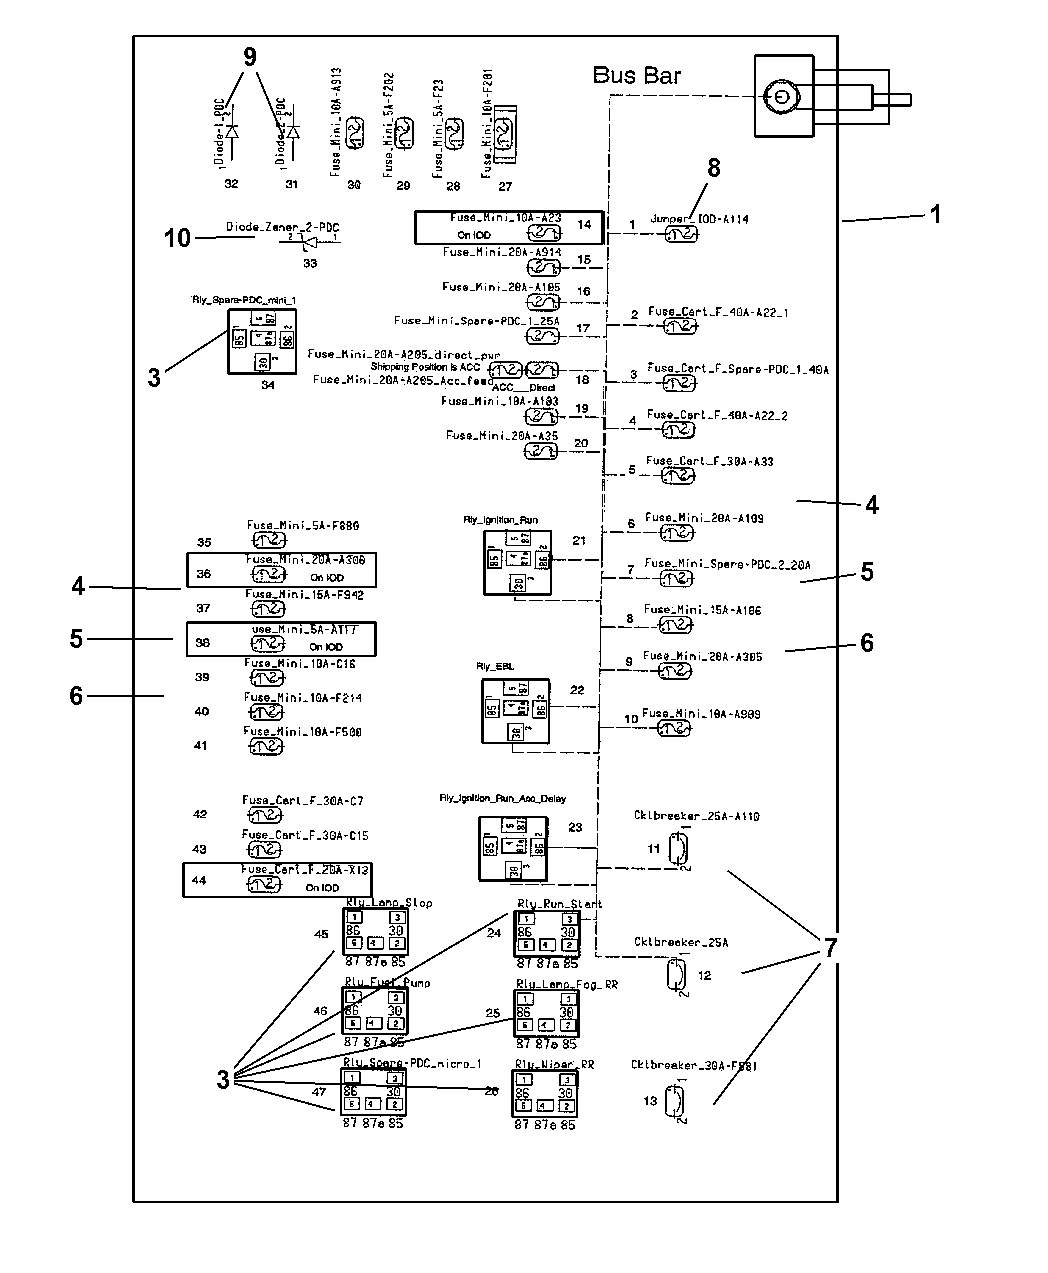 Diagram Of Fuse Box For 2005 Chrysler 300 Limited -C6 Engine Harness Diagram  | Begeboy Wiring Diagram Source